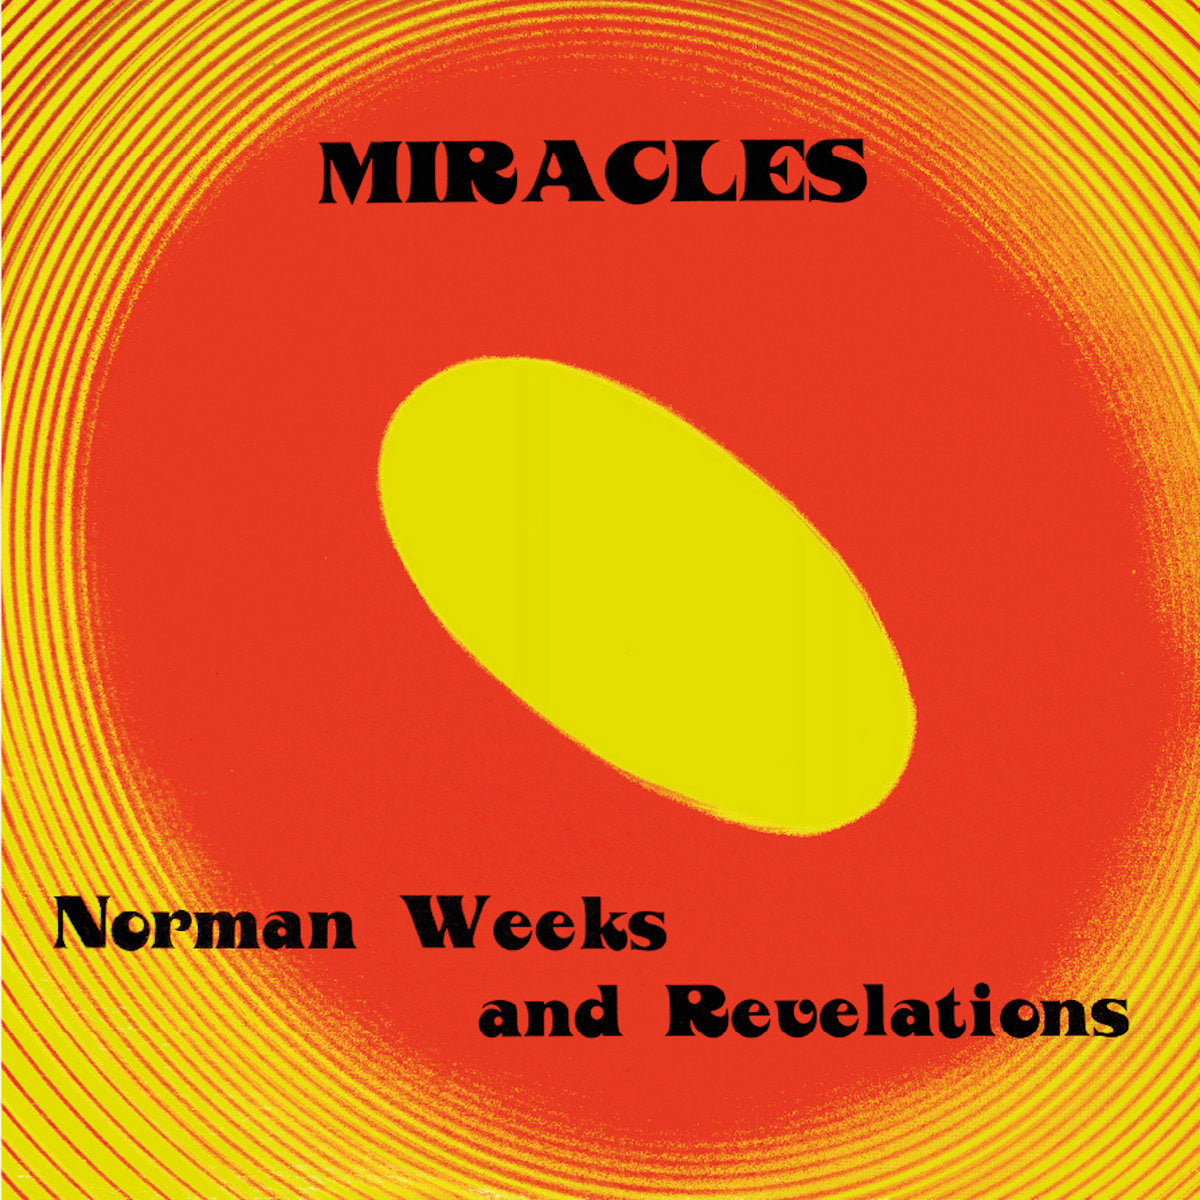 Miracles (New LP)